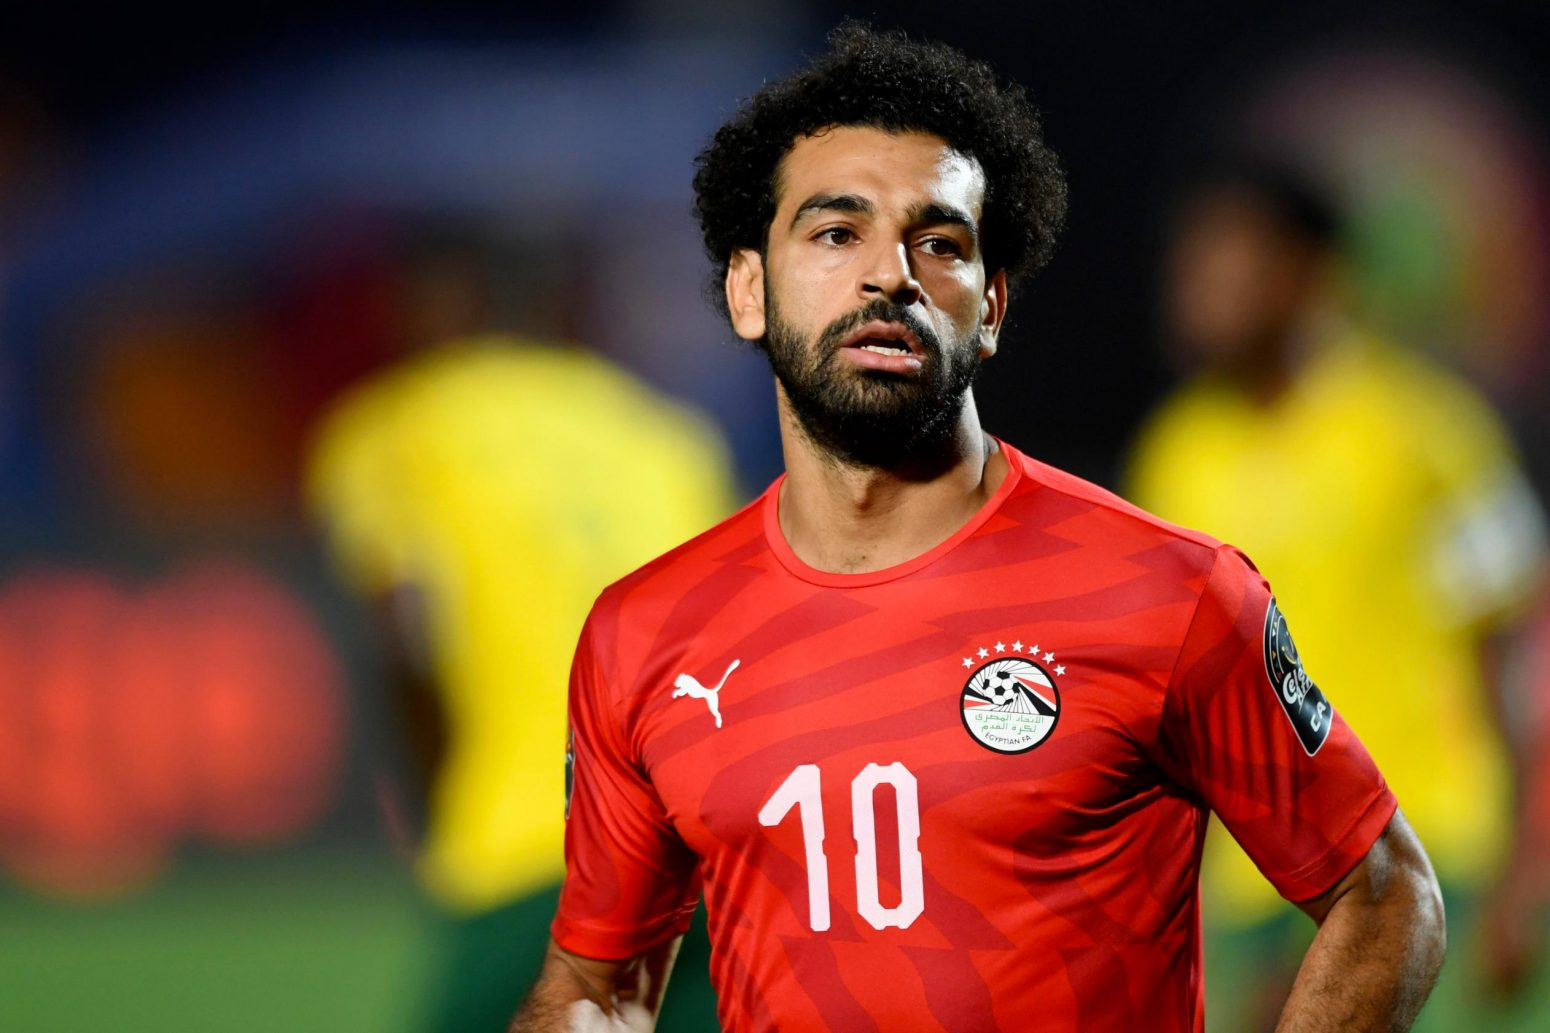 Liverpool want more information before making decision on Salah at Tokyo 2020